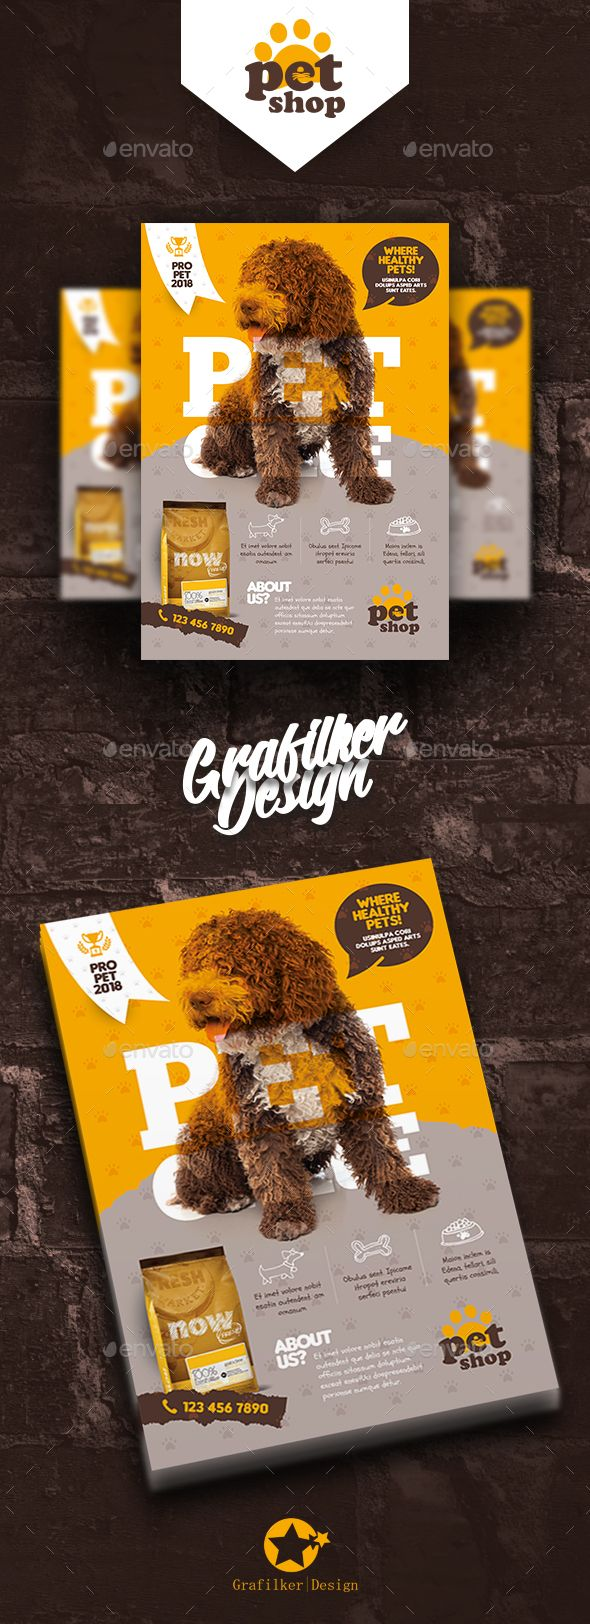 Pet Shop Flyer Templates Corporate Flyers Flyer Pinterest